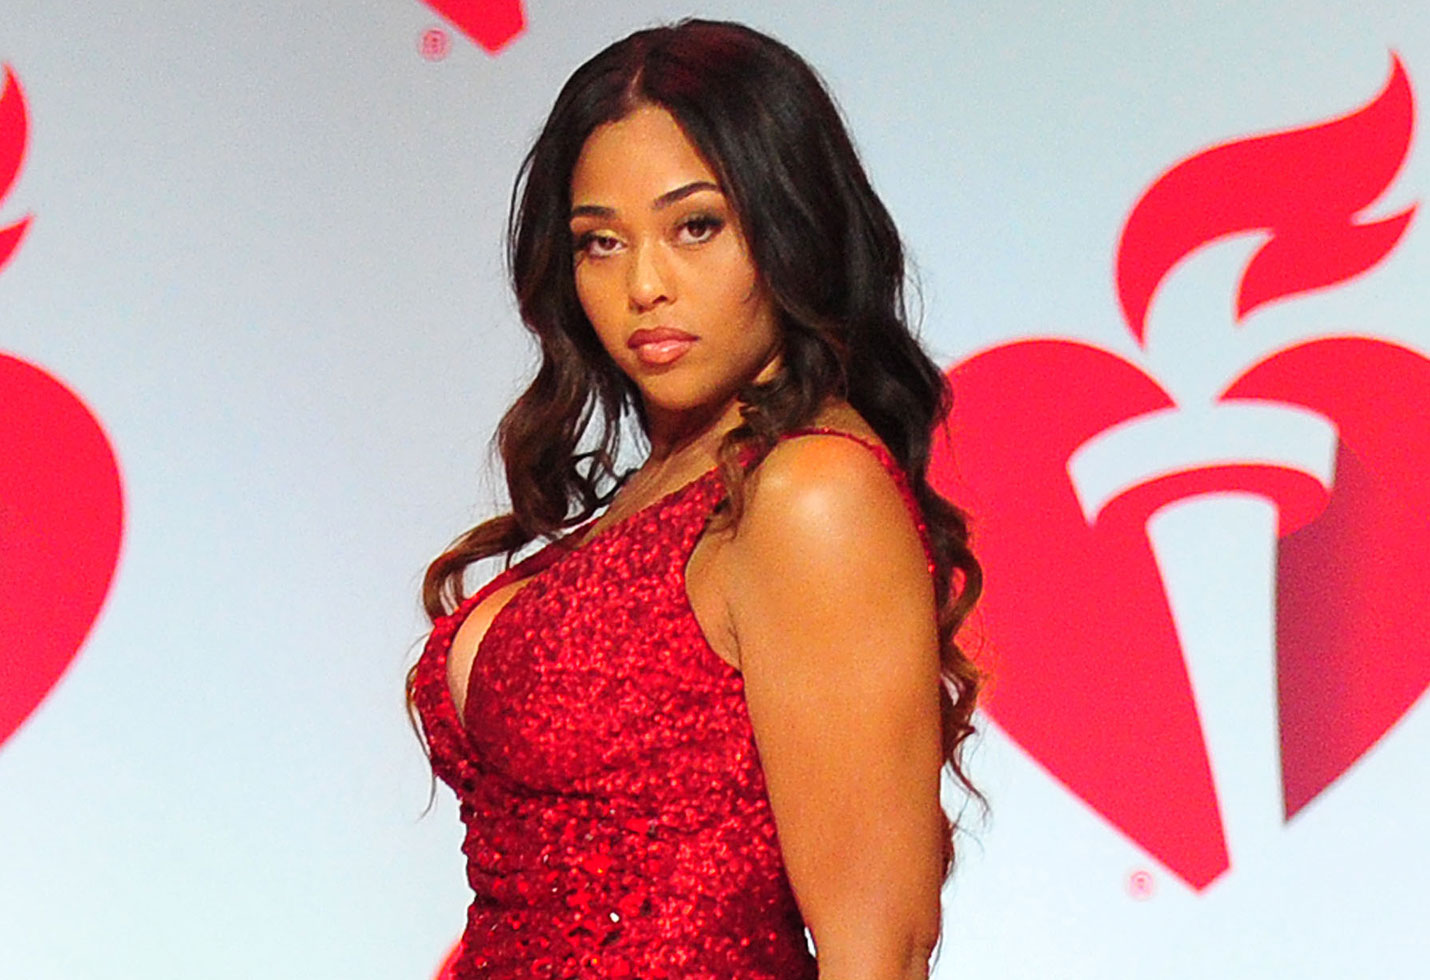 """jordyn-woods-shares-jaw-dropping-pics-in-red-lingerie-ahead-of-valentines-day-megan-thee-stallion-flirts-with-her"""